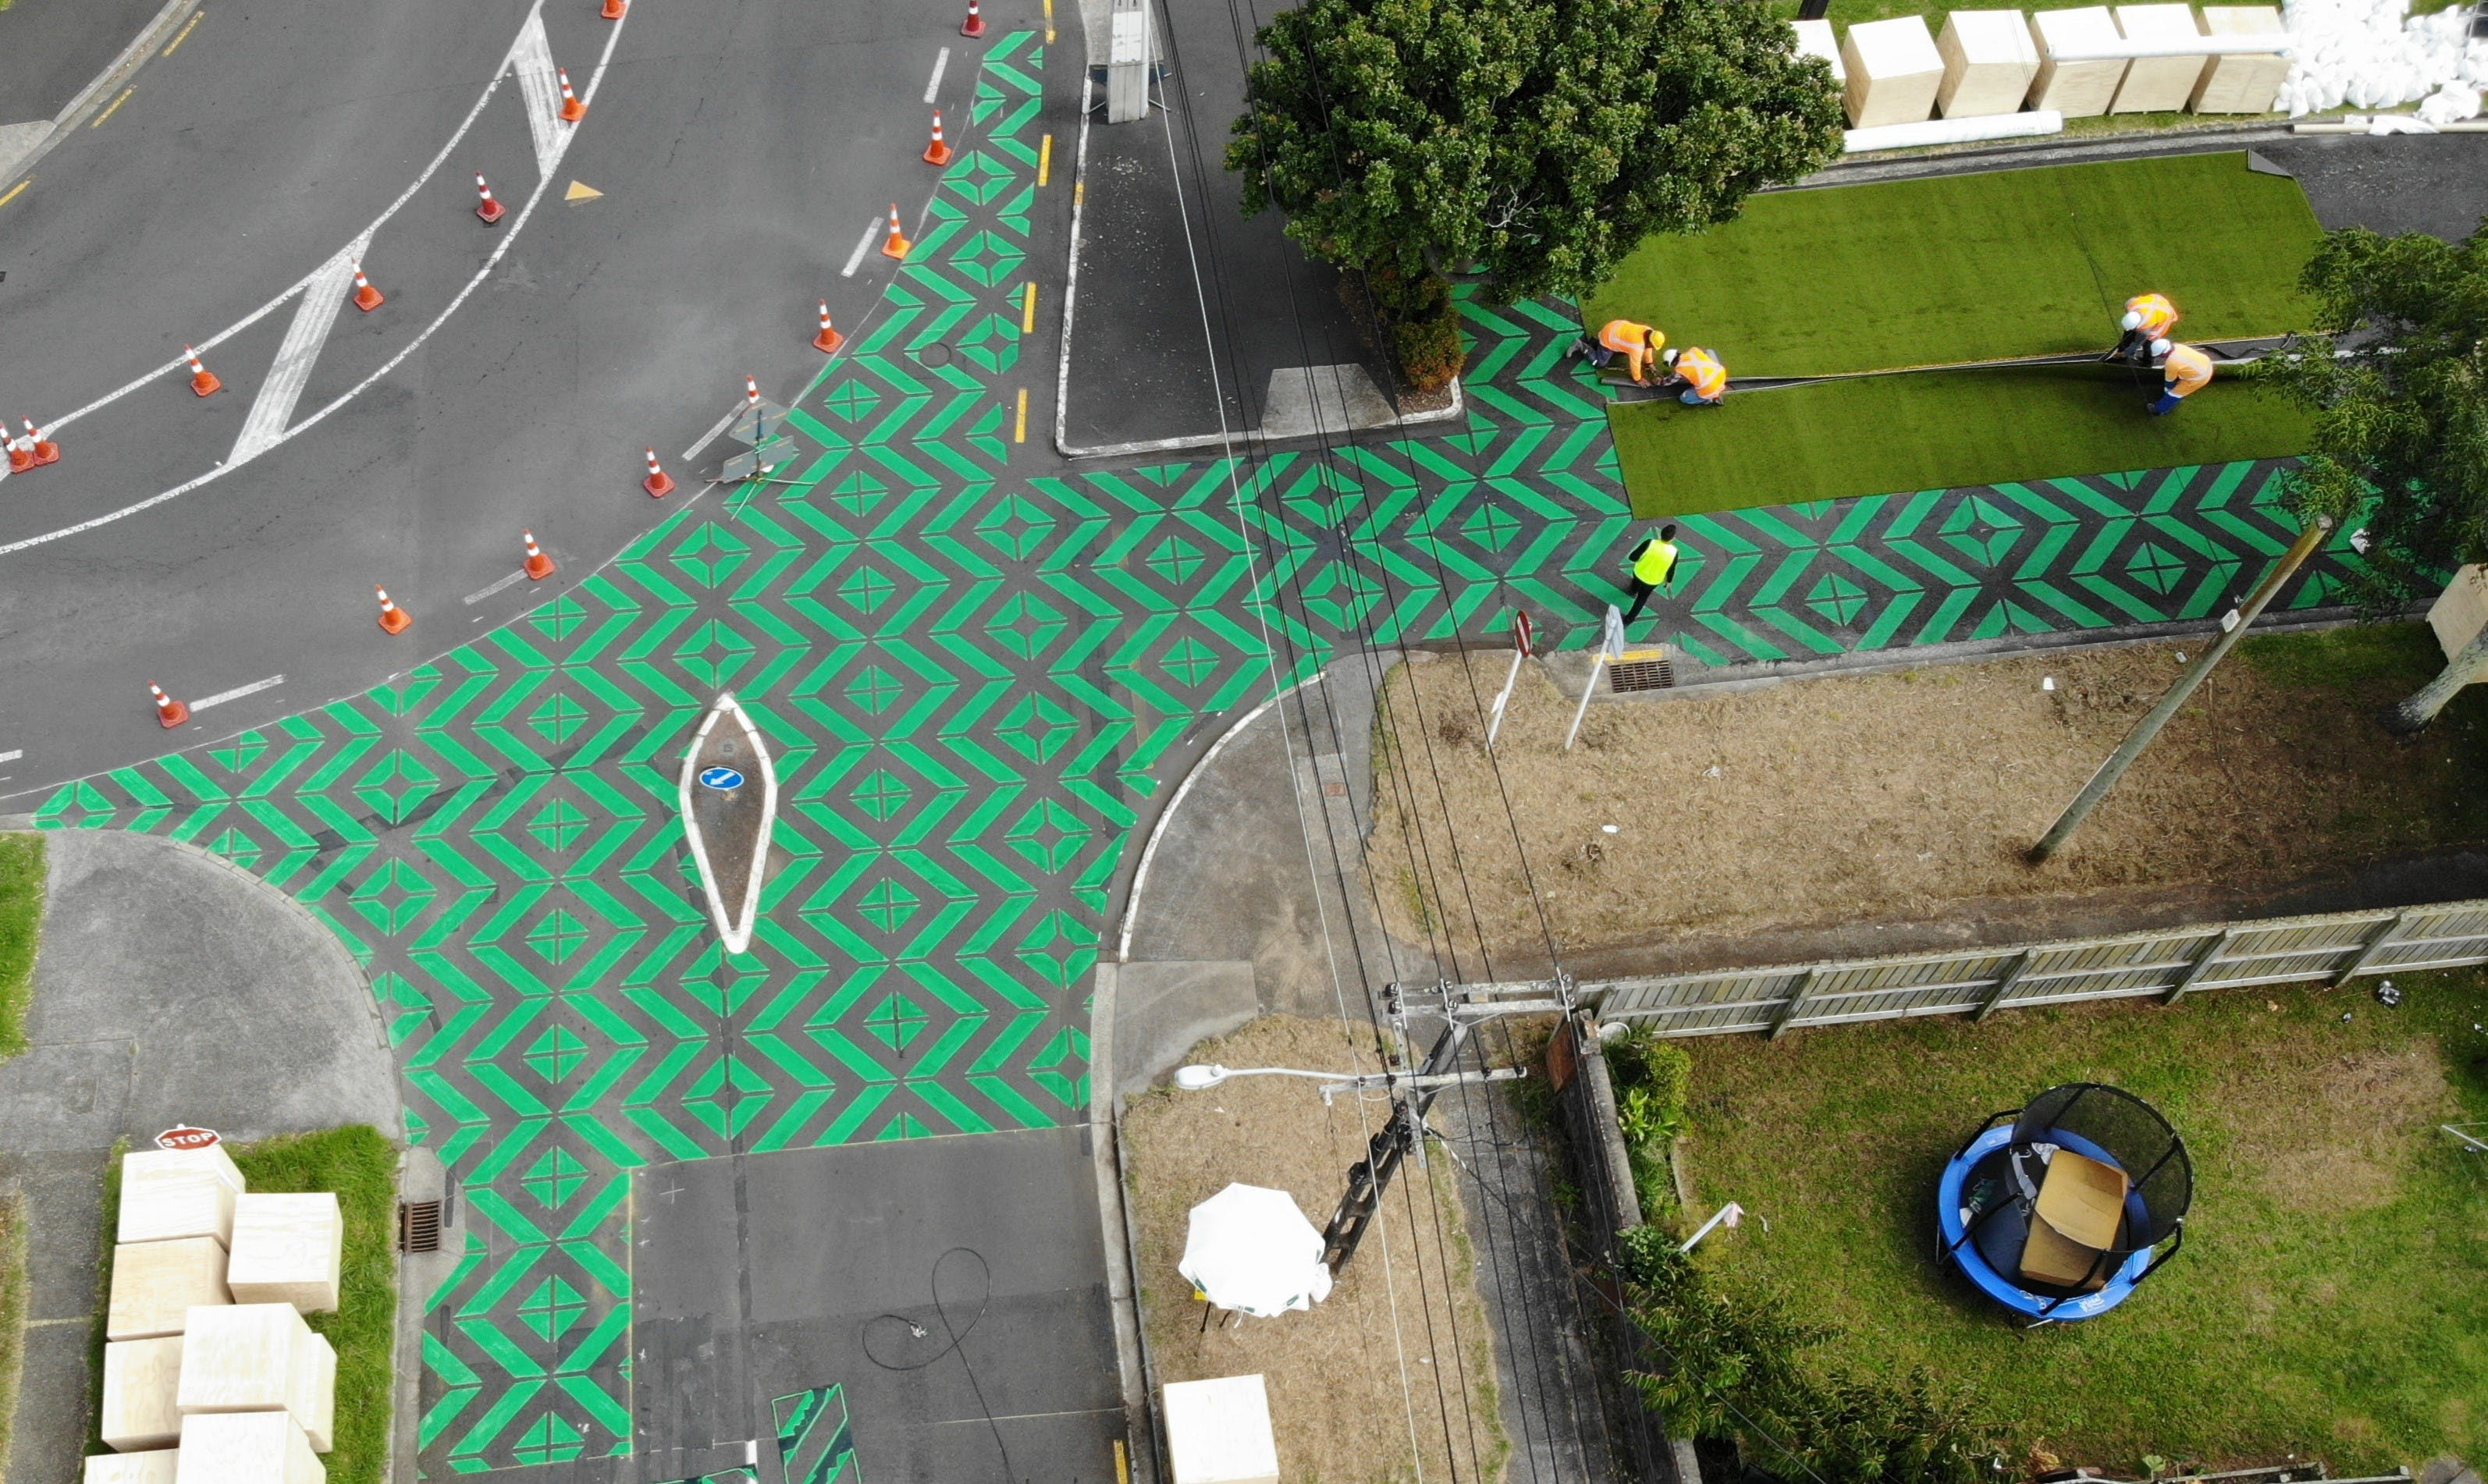 Aerial image of Arthur and Galway streets during install